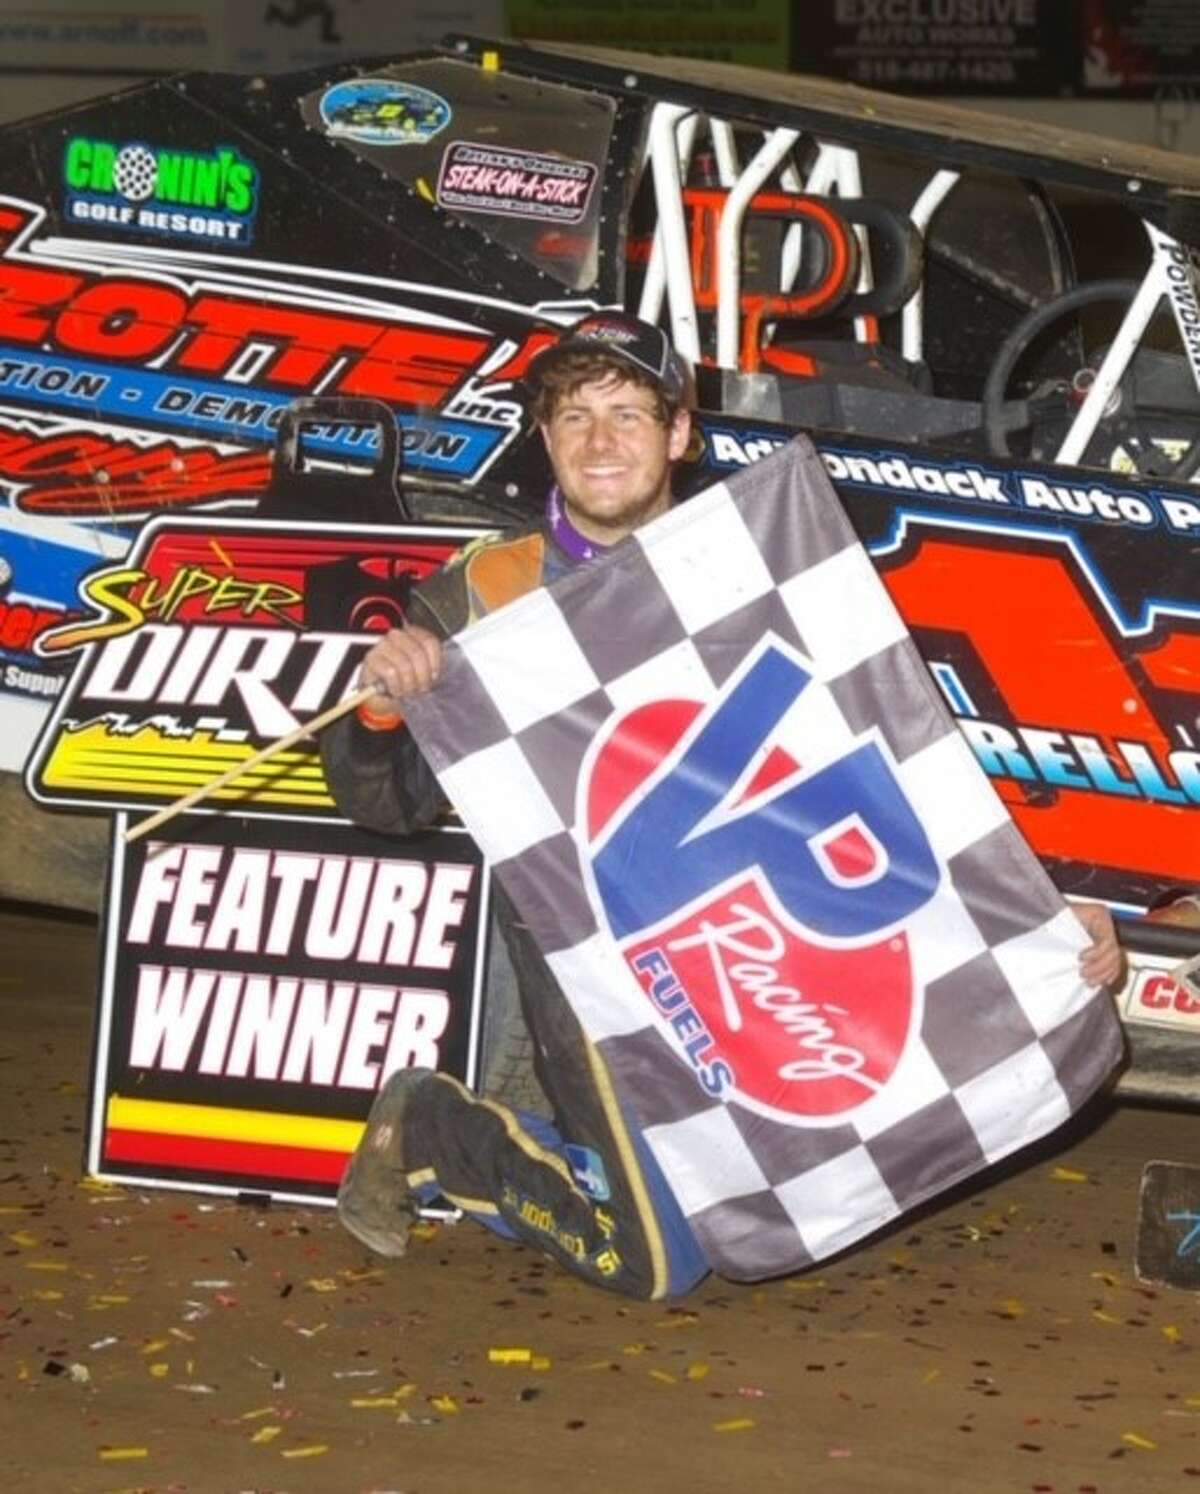 Demetrios Drellos won the Sportsman Modified points title at Devil's Bowl Speedway. (Courtesy of Mark Brown Photography)